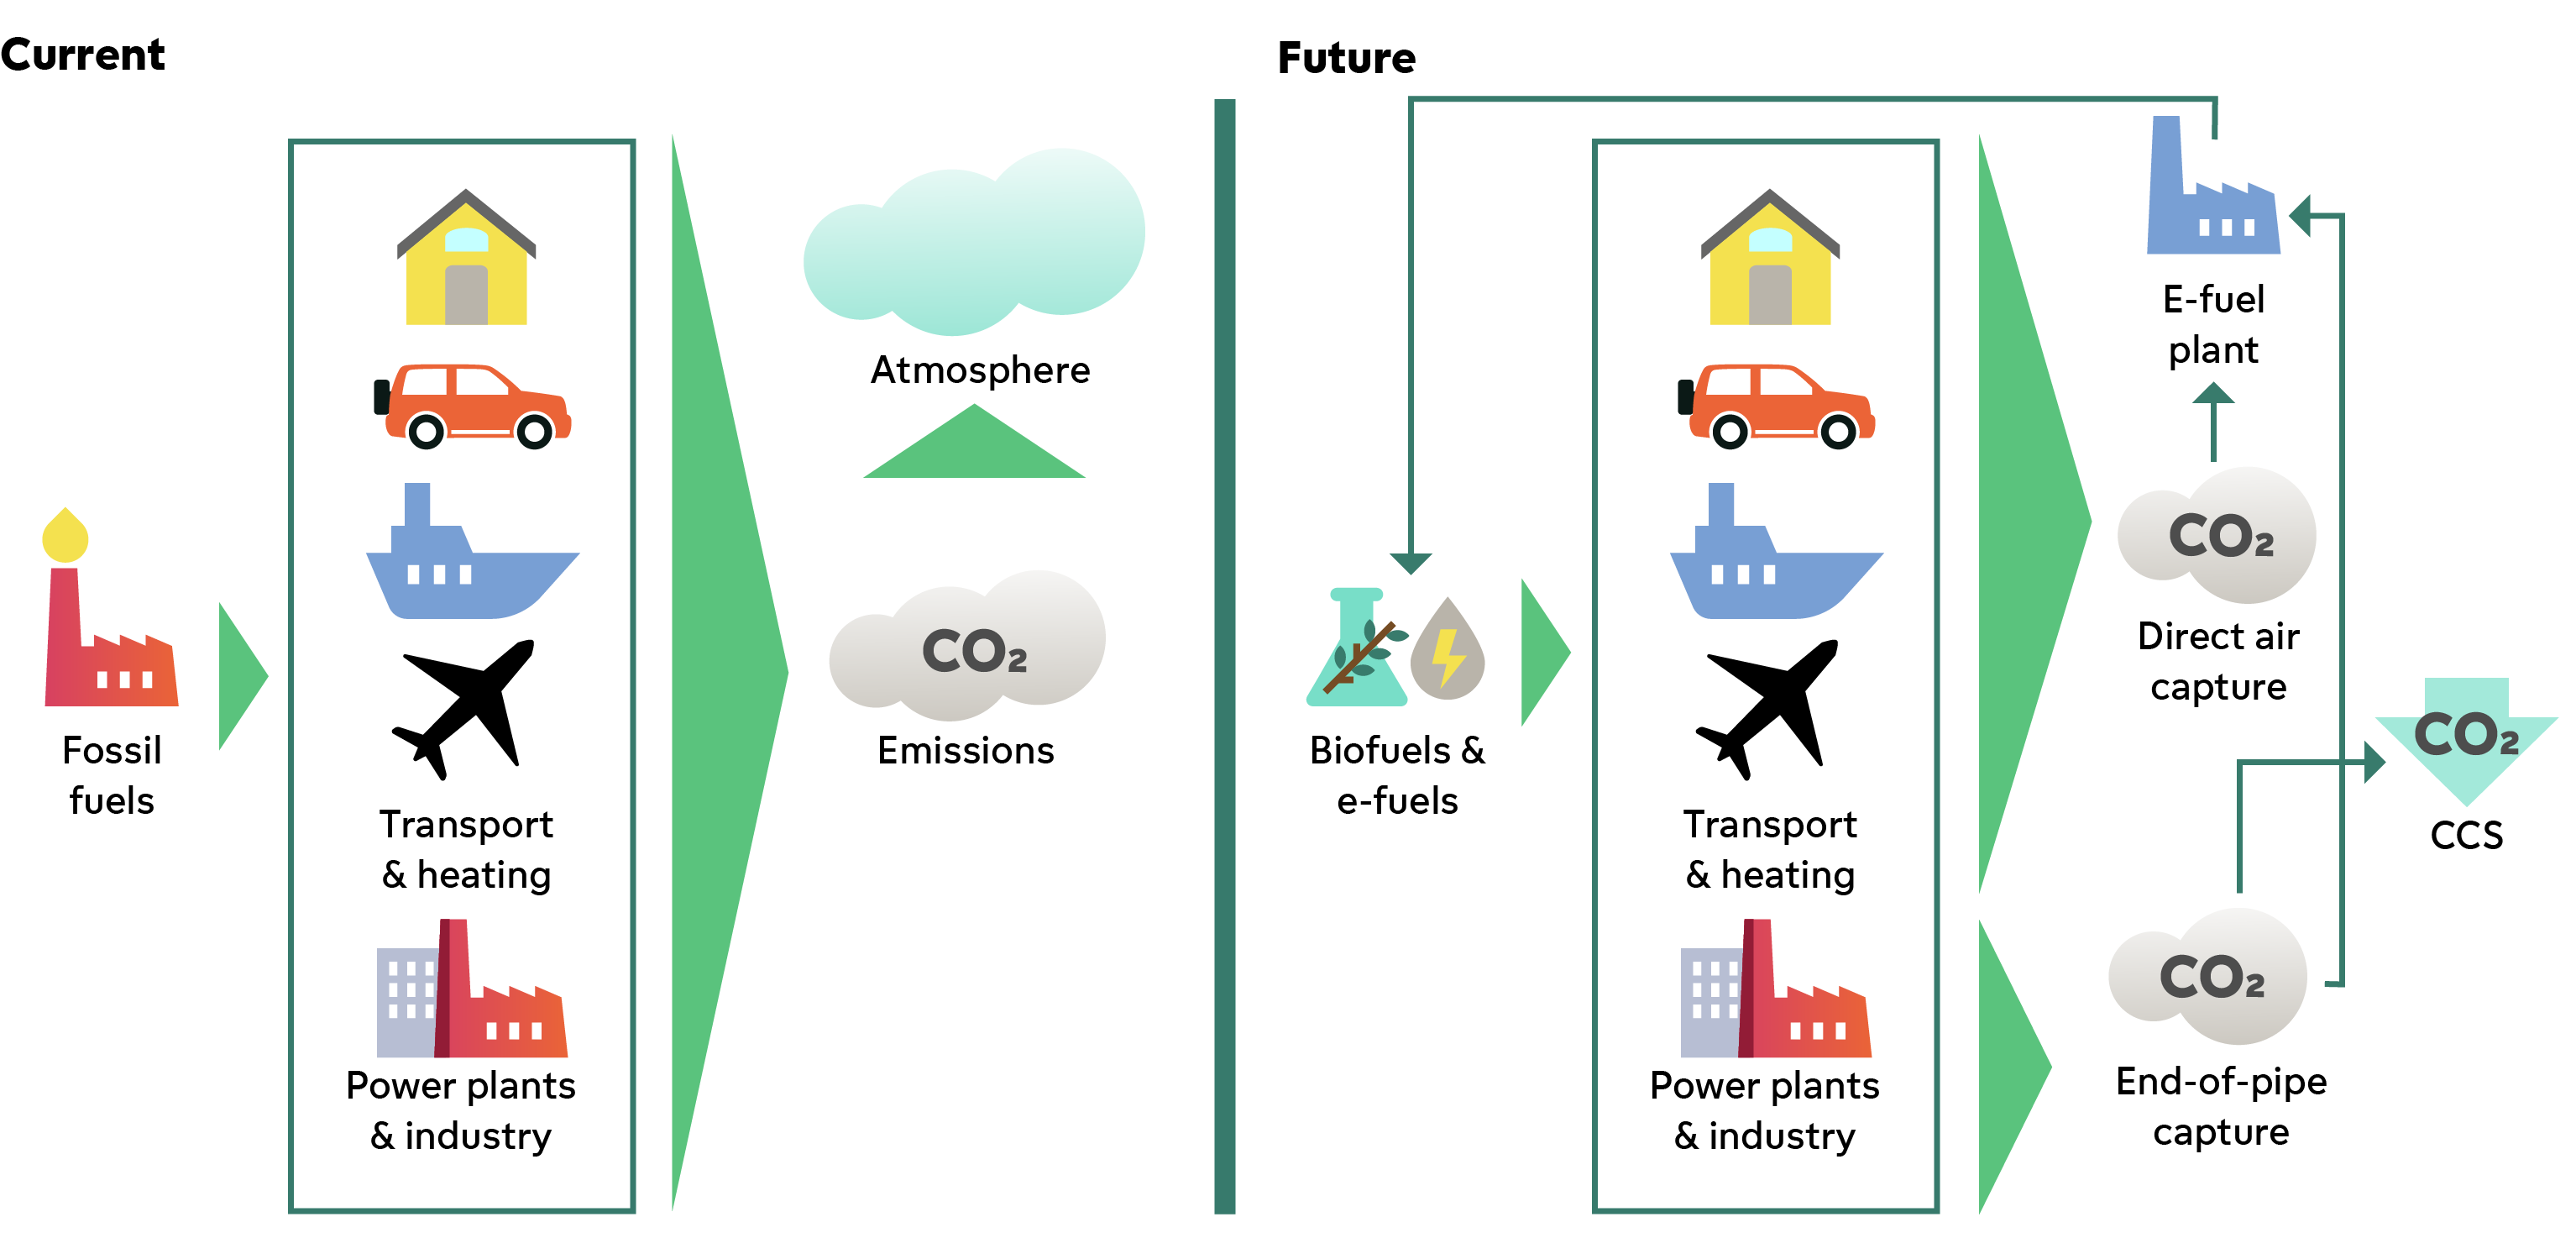 A chart explaining how CO2 circulates currently in energy use and how it will circulate in the future scenario. In future scenario, instead of letting CO2 into air, it could be utilized in e-fuel production or captured in a CCS process.